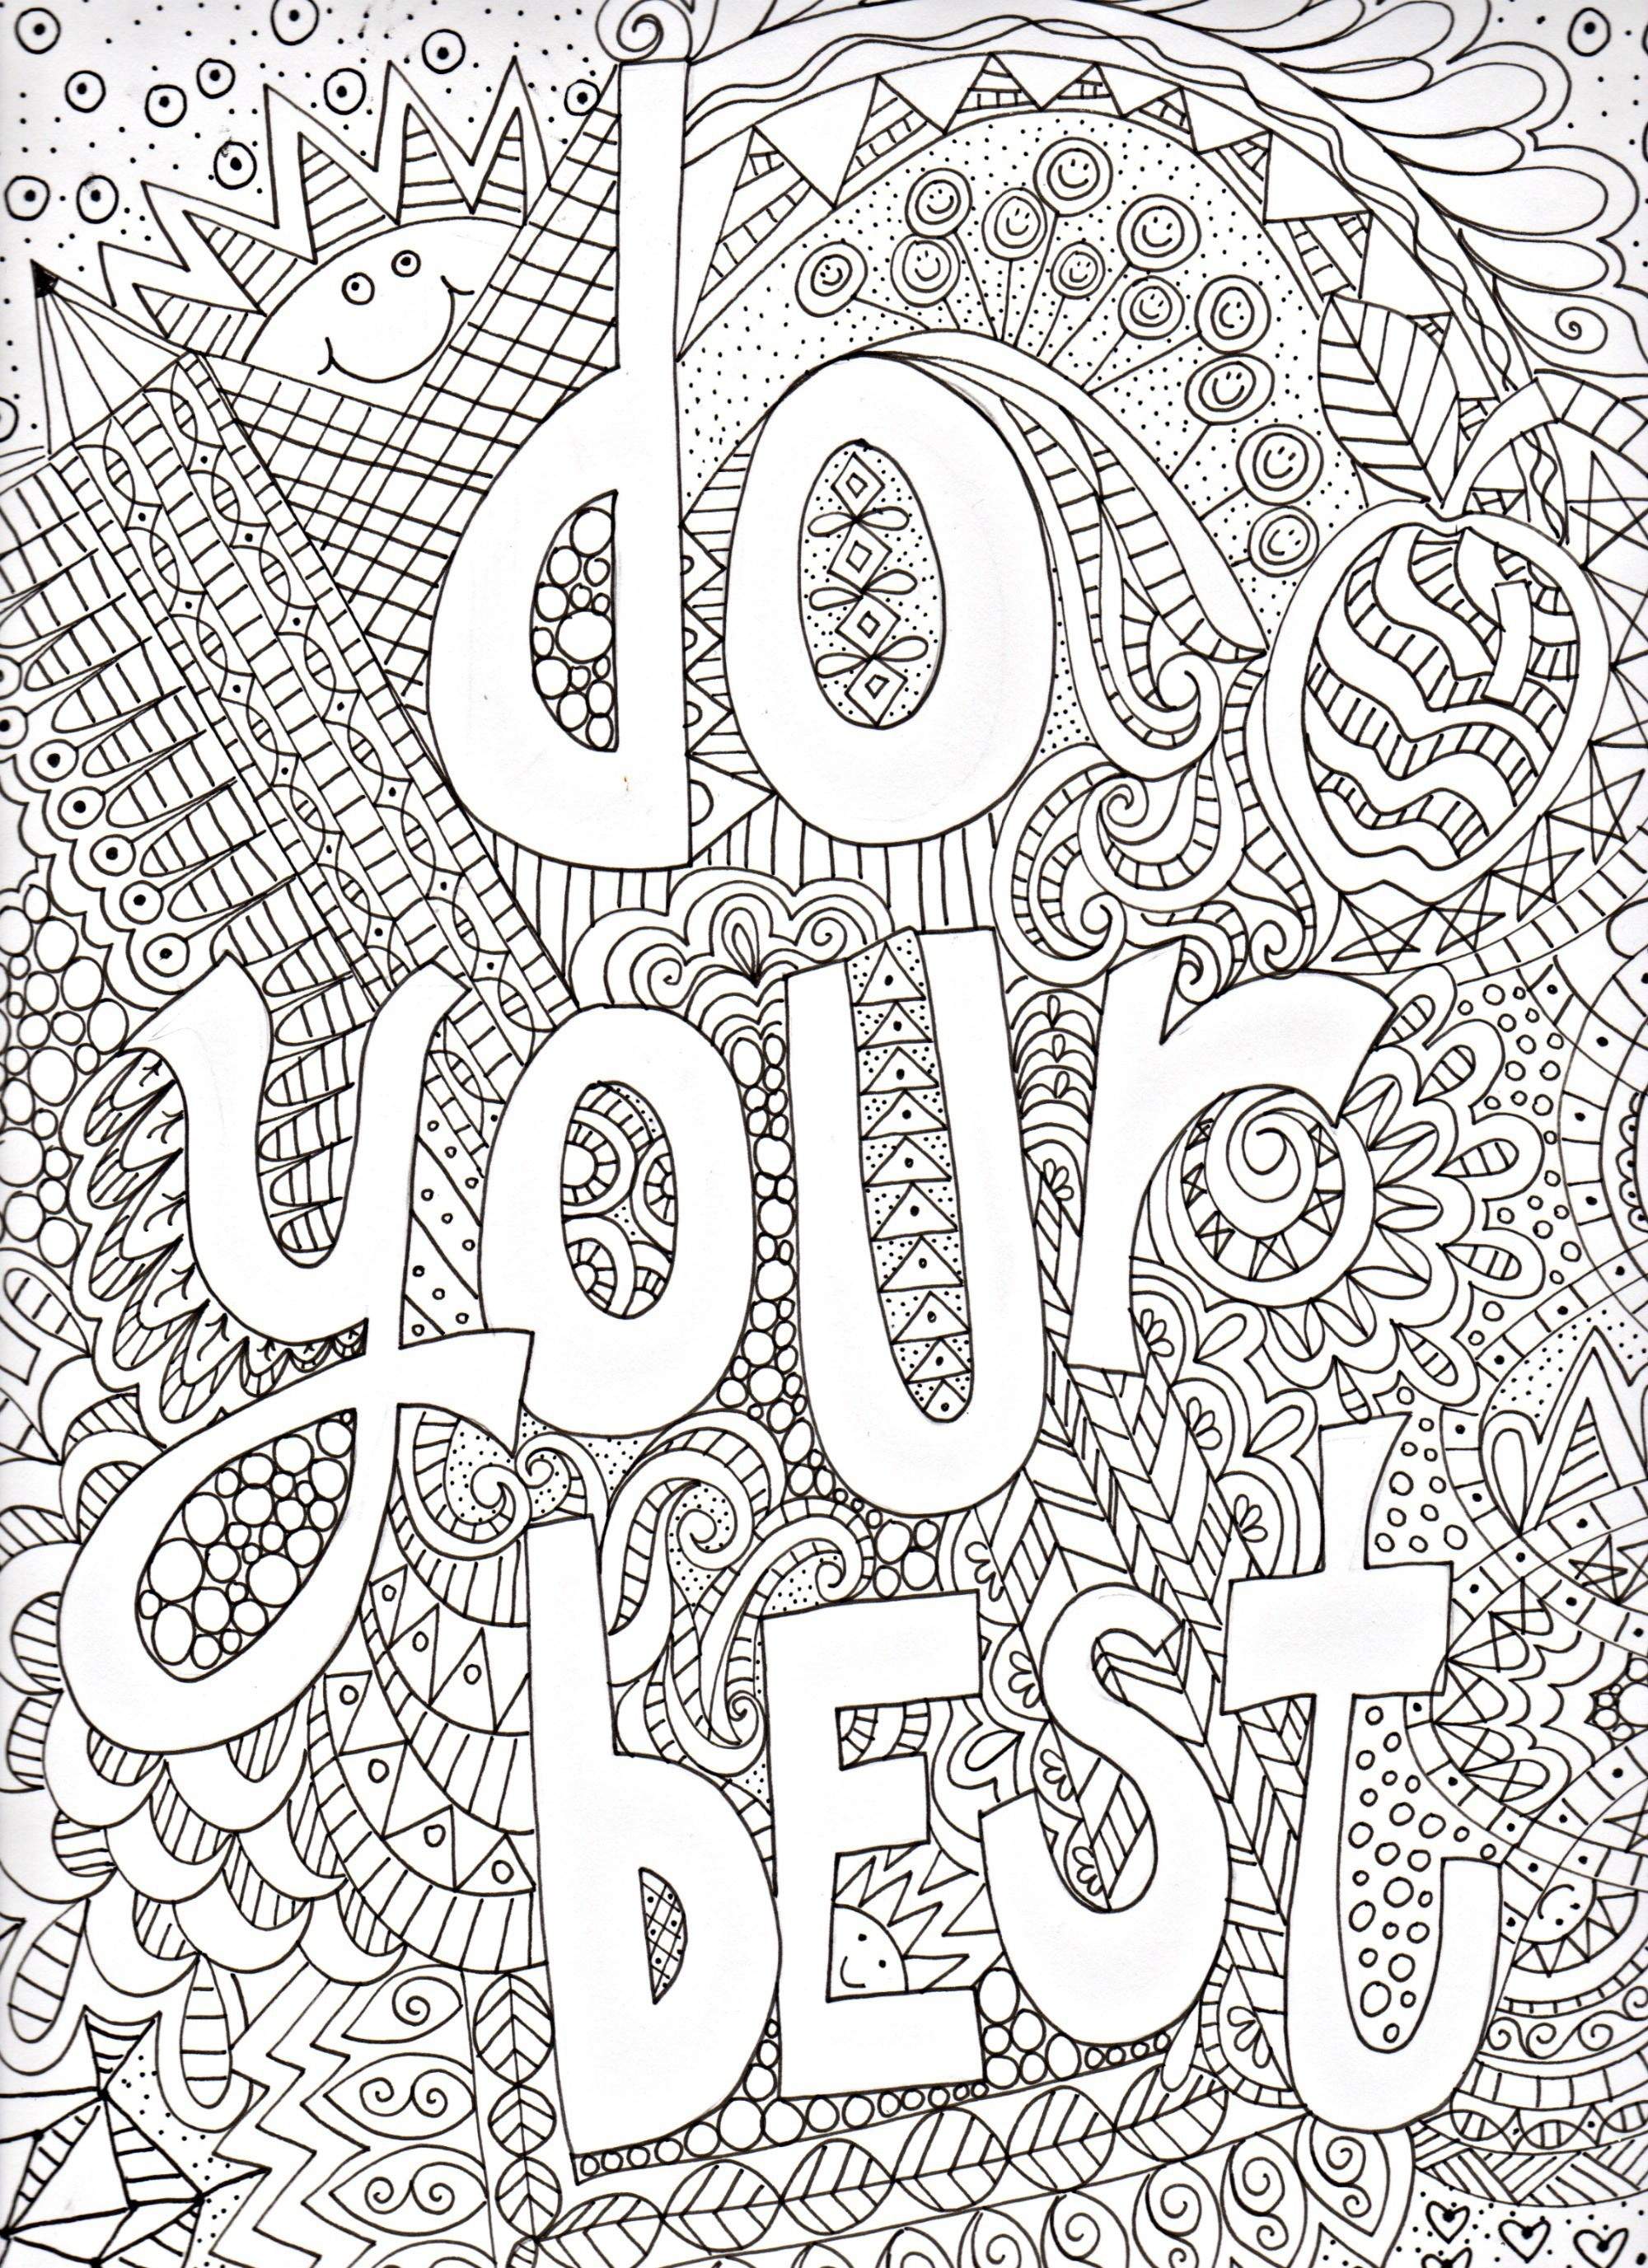 Quote Coloring Pages Bloodbrothers Printable Free Coloring Books Collection Of Free Printable Quote Coloring Pages for Grown Ups Download